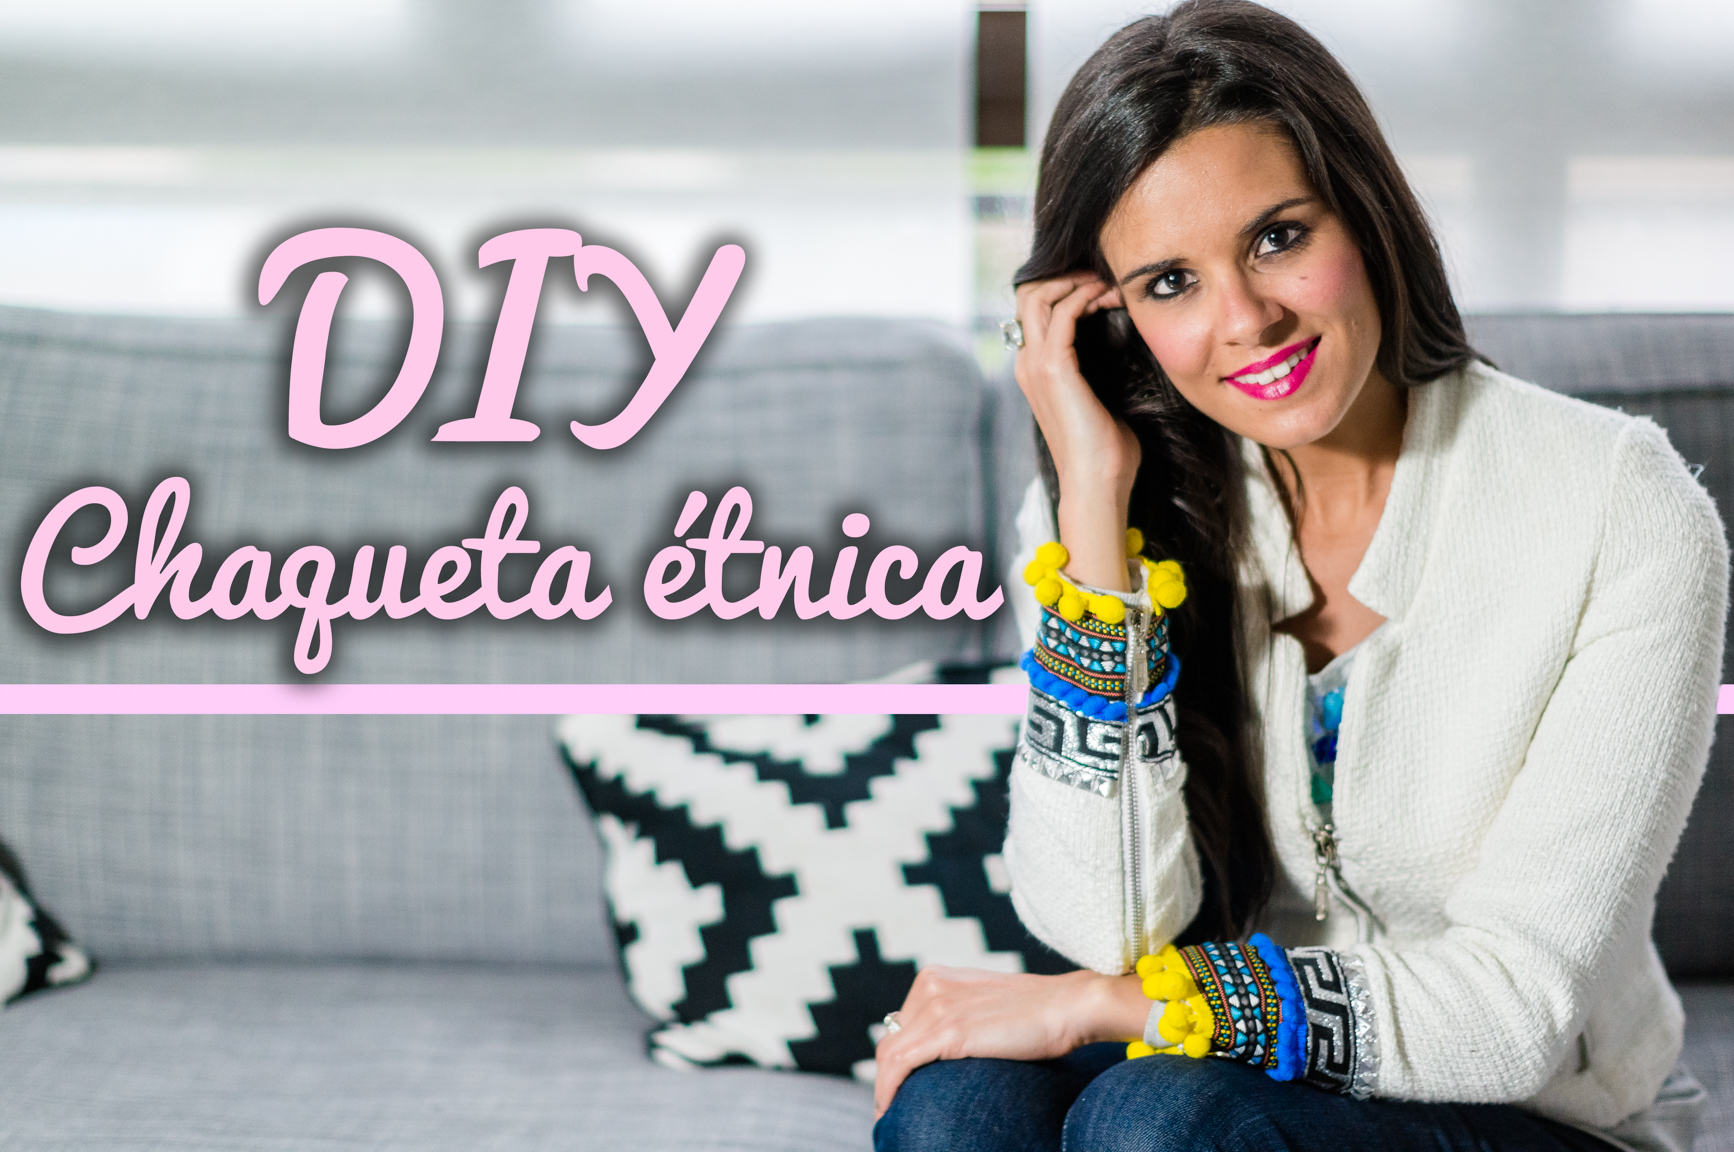 Video DIY Chaqueta étnica-12198-crimenesdelamoda